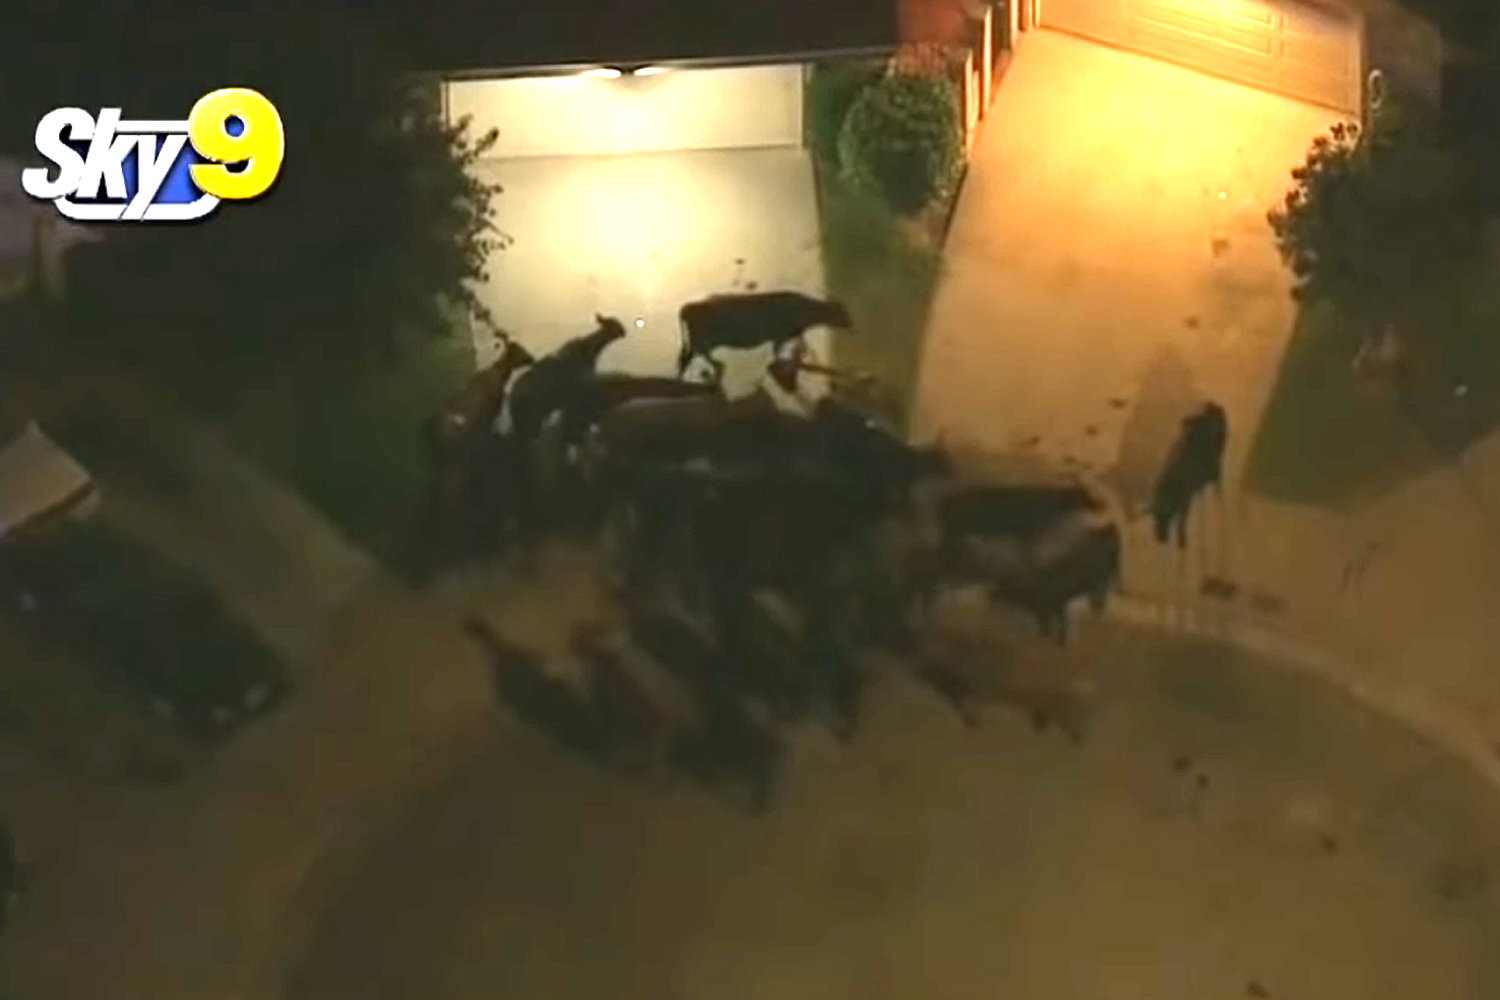 Cows Stampede Through Pico Rivera Neighborhood, At Least 1 Person Injured